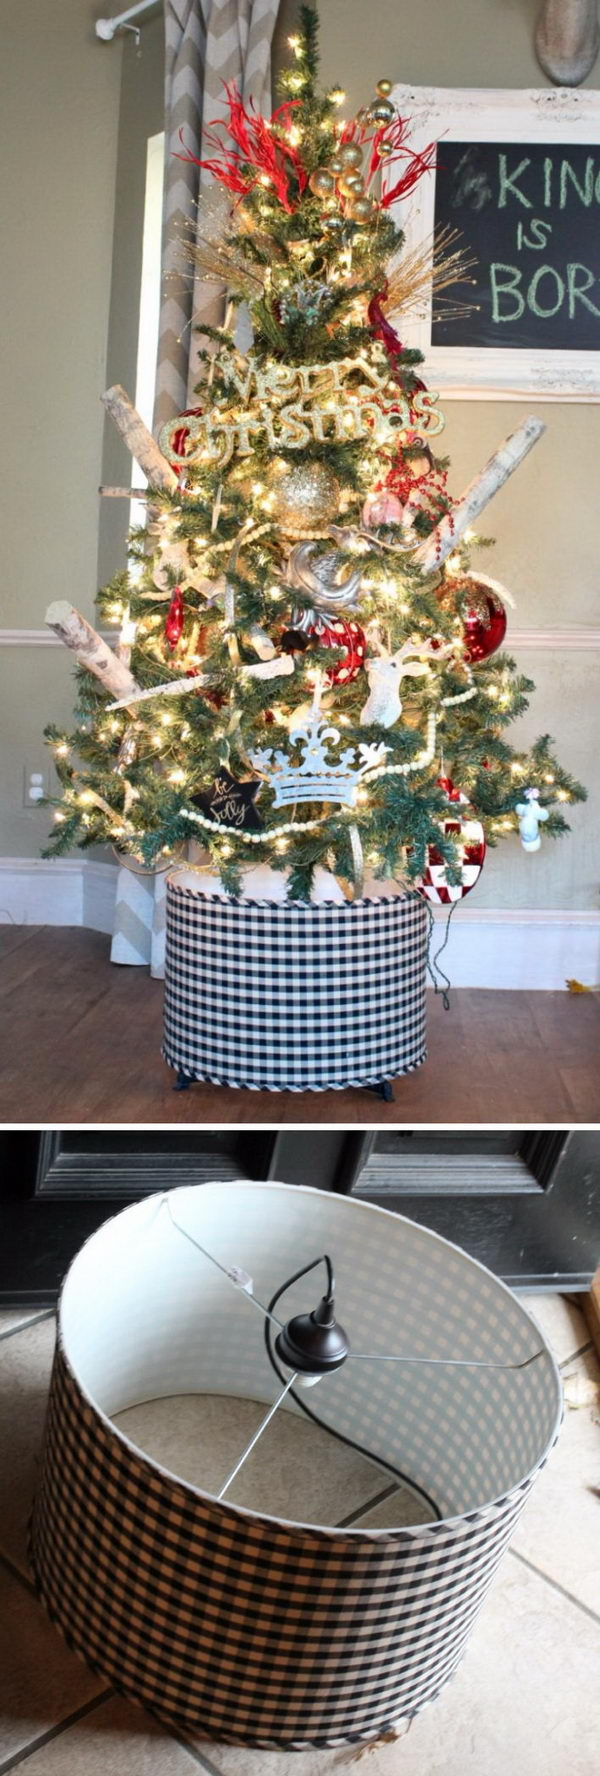 Black And White Gingham Drum Light Fixture Christmas Tree Stand